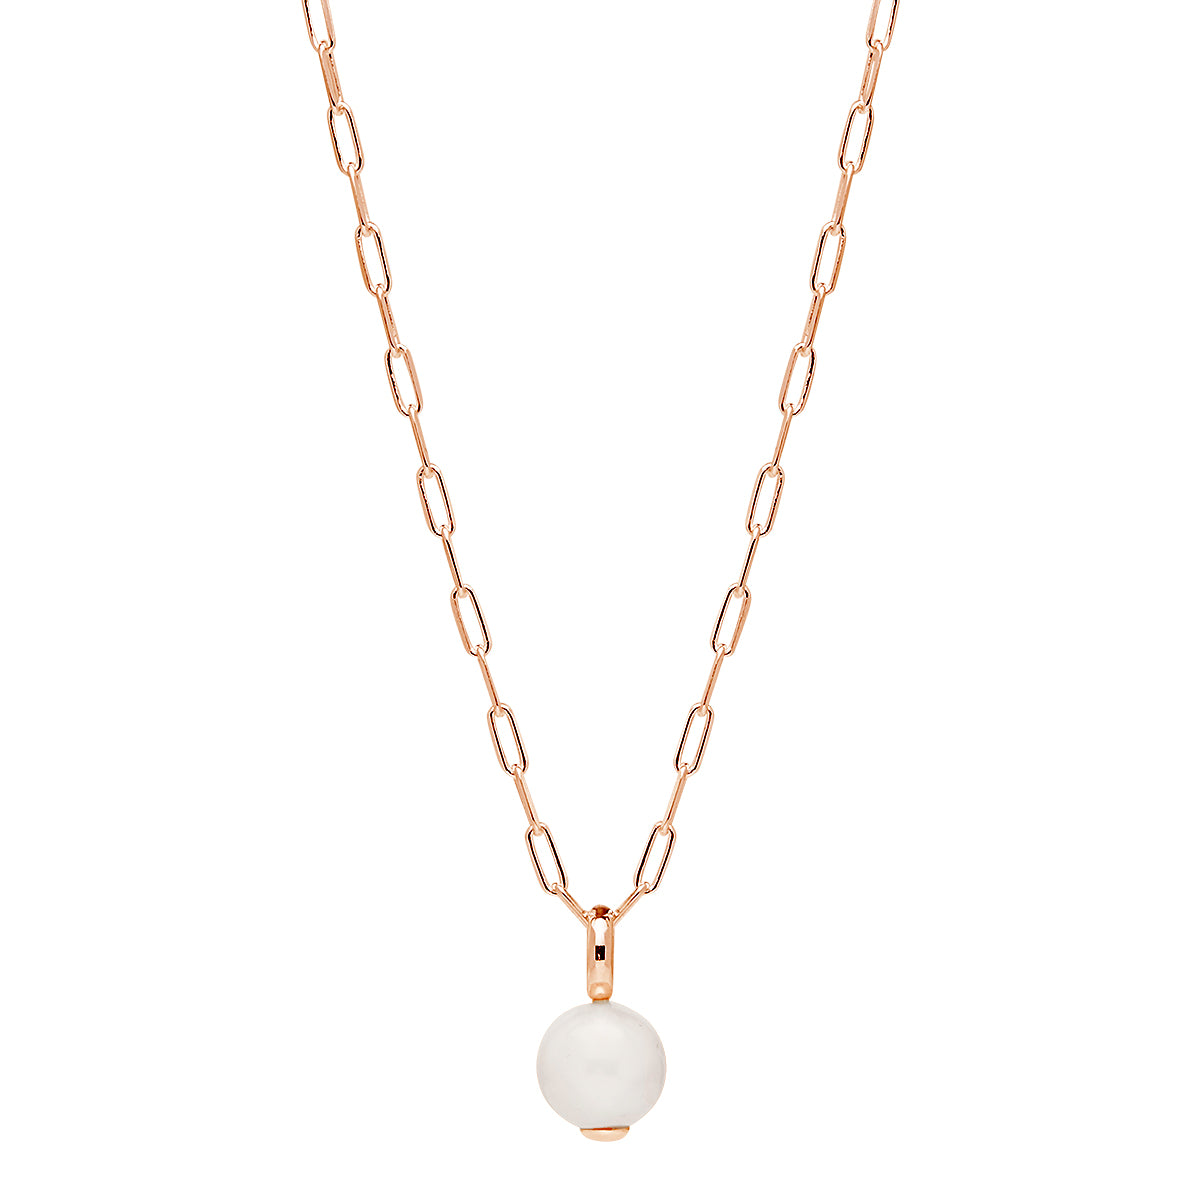 Ms Perla Rose Necklace